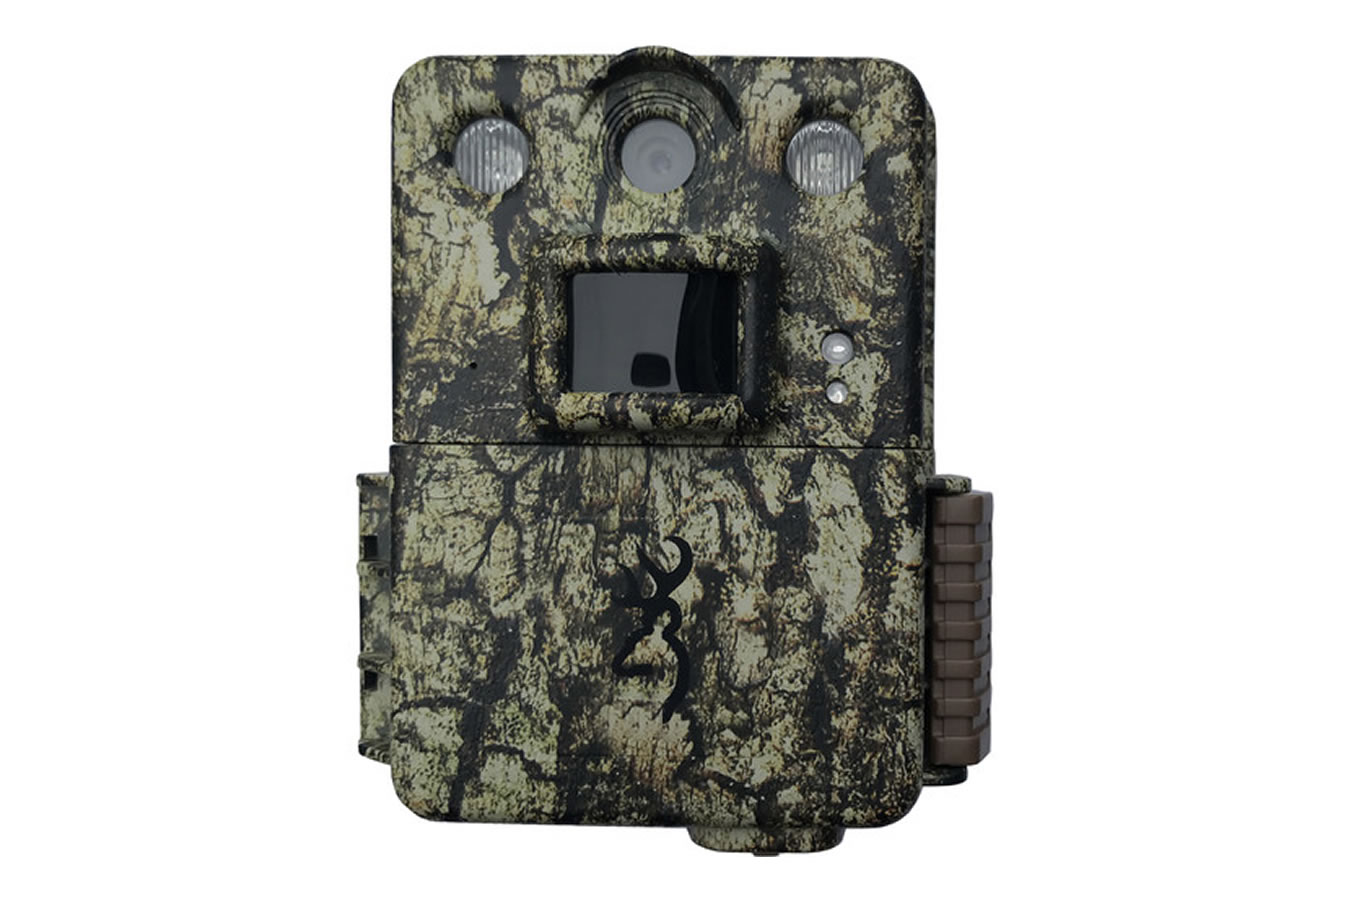 COMMAND OPS PRO TRAIL CAMERA